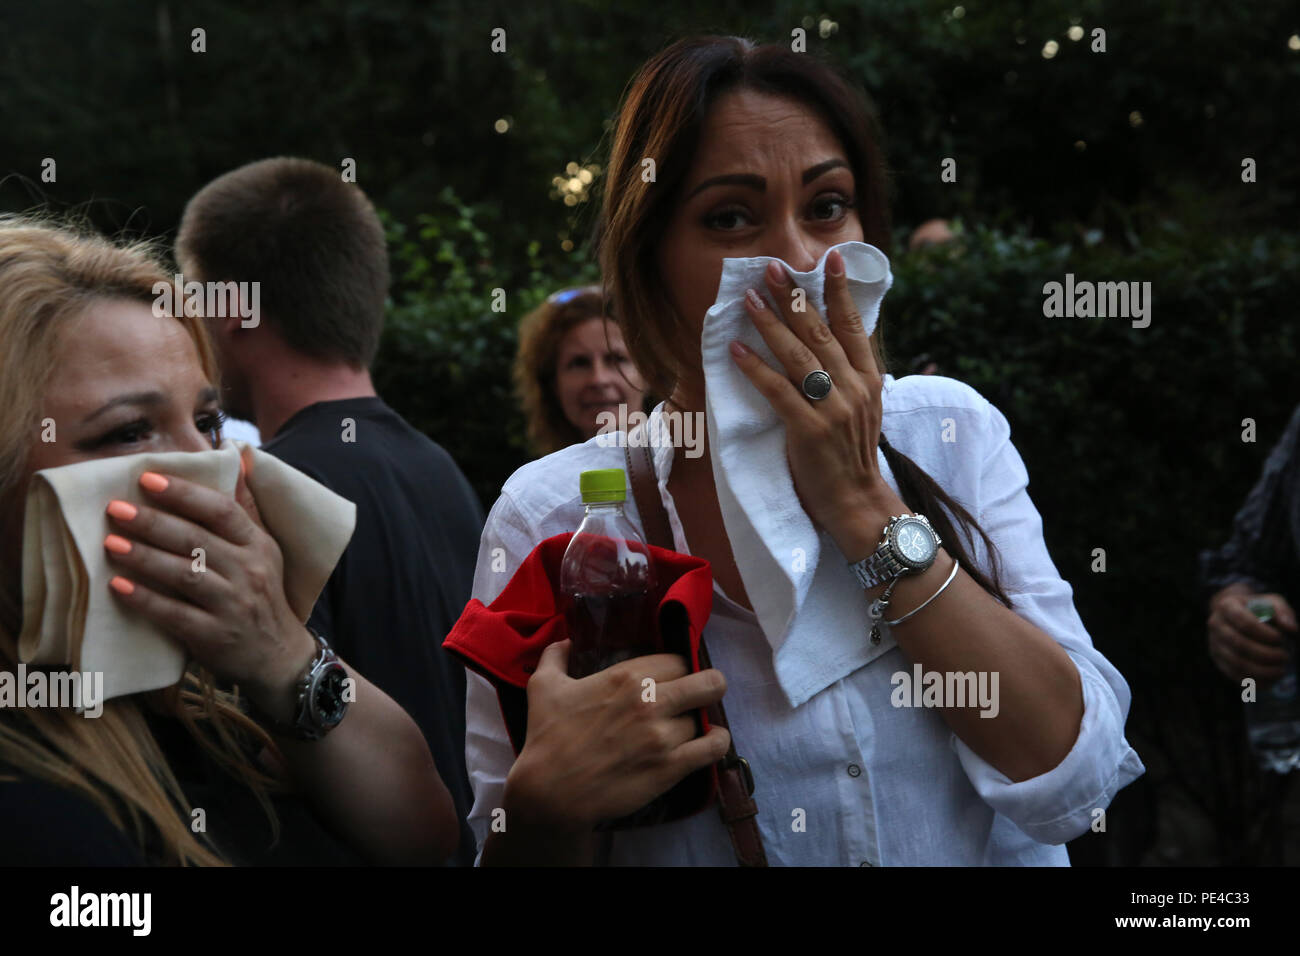 Bucharest, Romania - August 10, 2018: Women are covering the face to protect against tear gas during the violent anti-government protest in Bucharest. - Stock Image